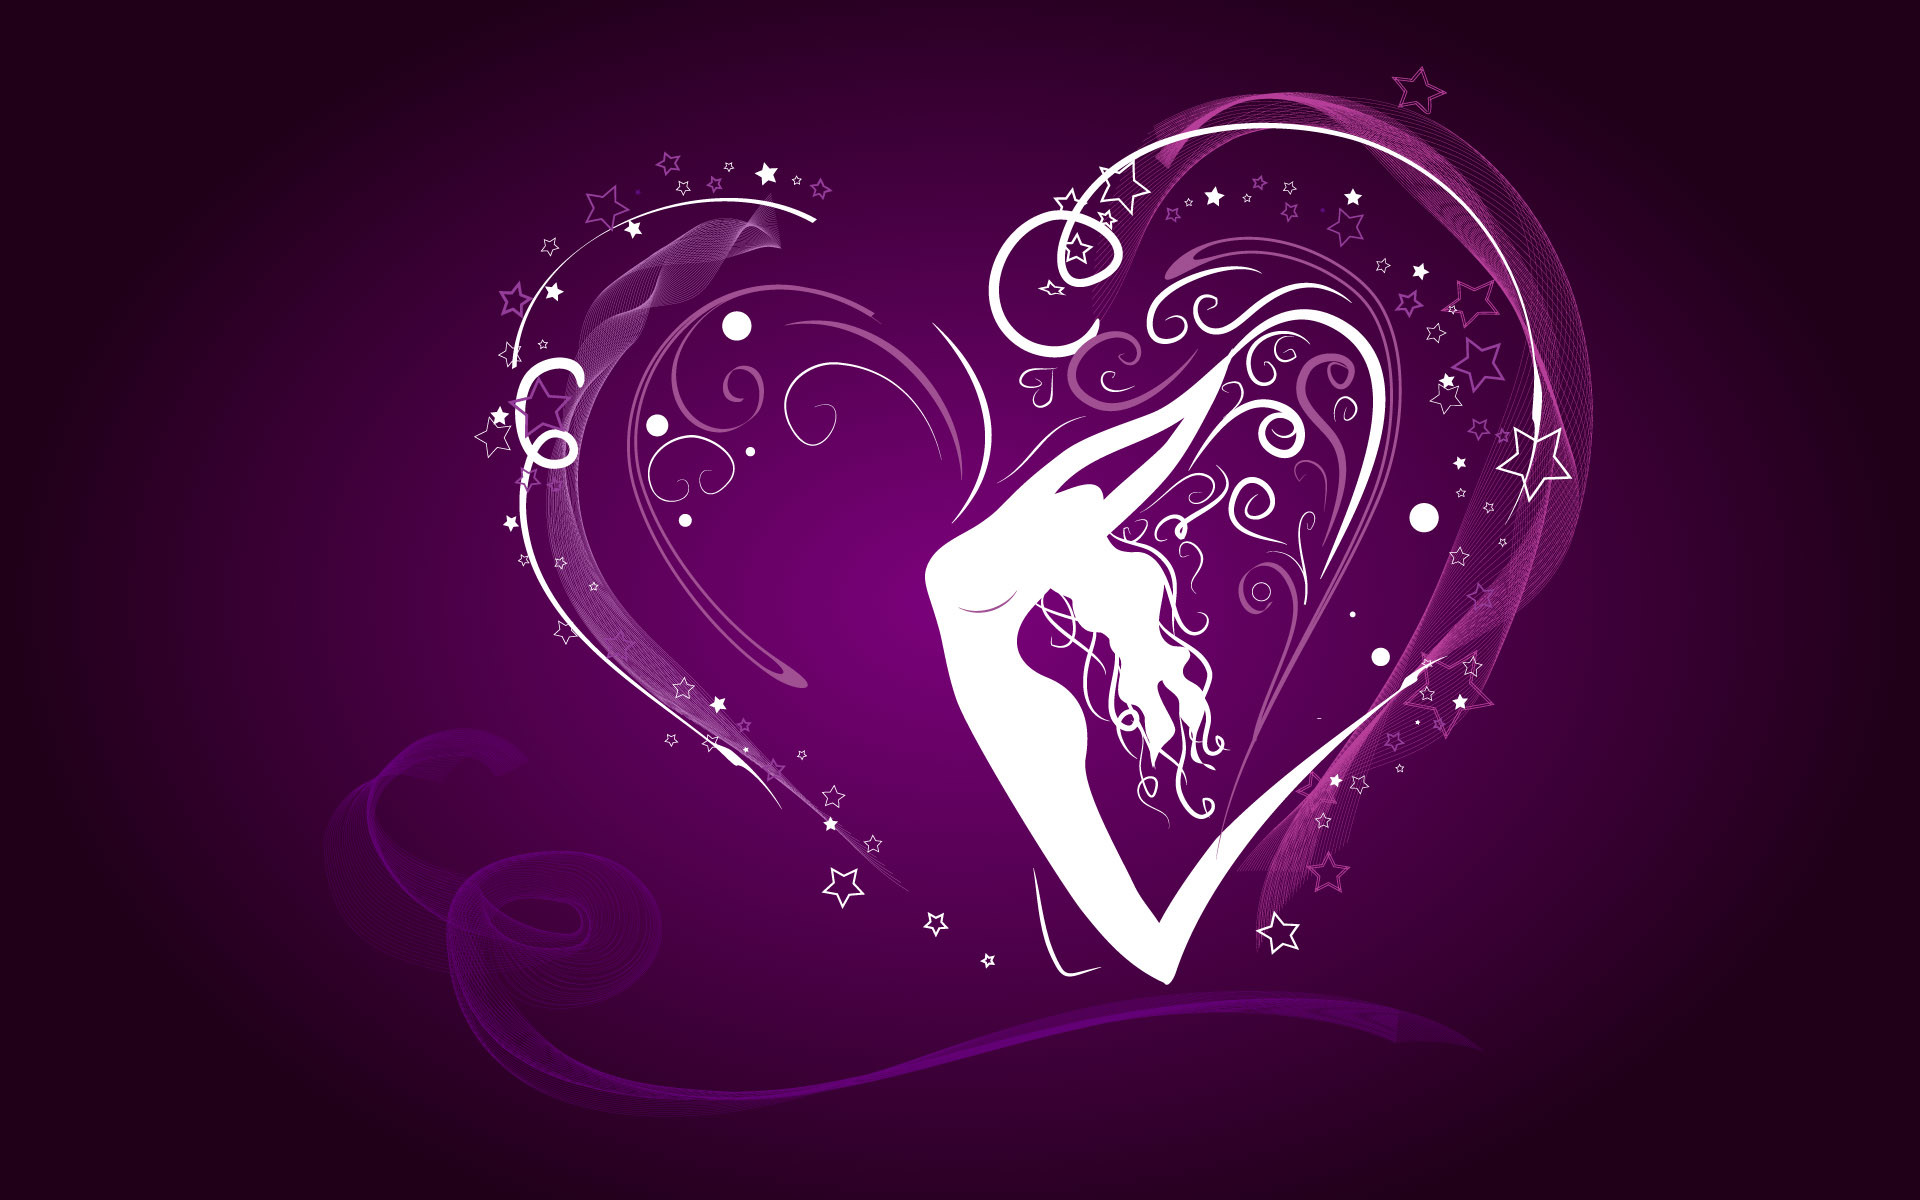 My Love Wallpapers 62 Images